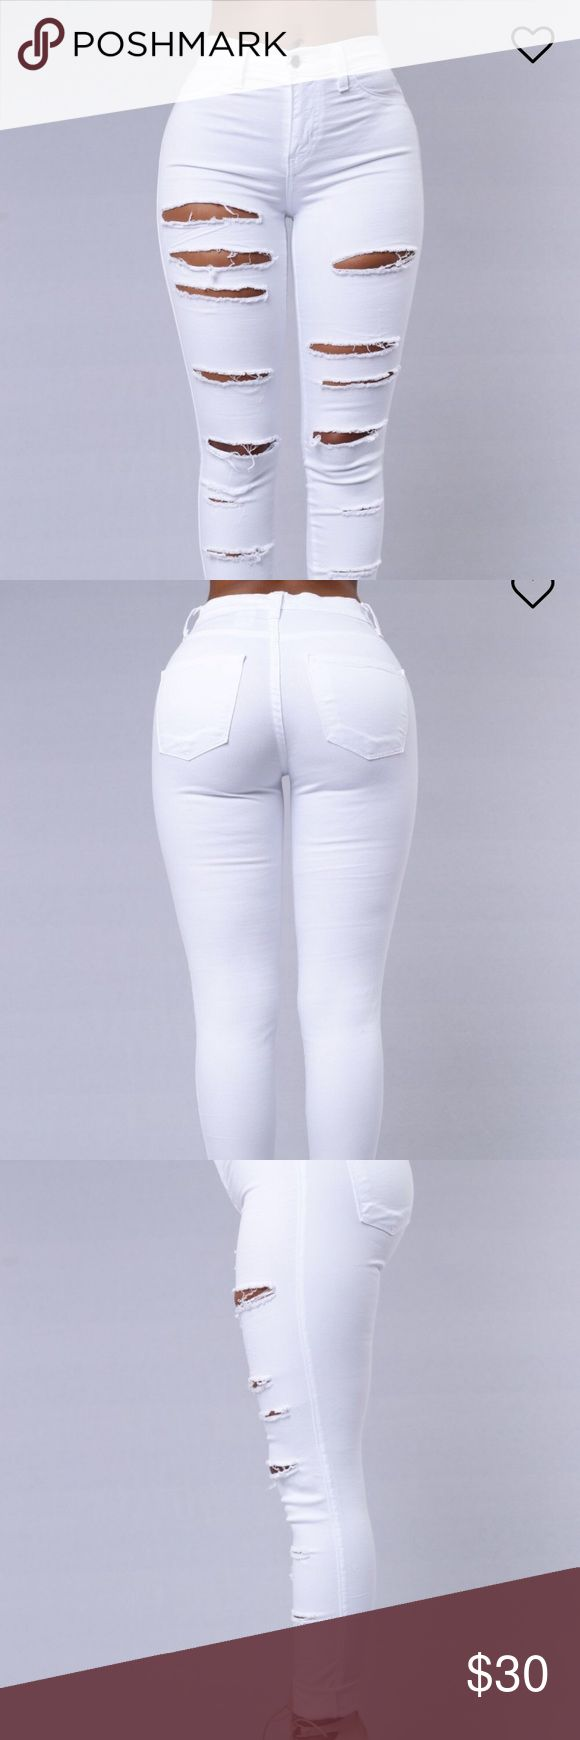 """White High Waisted Fashion Nova Jeans """"Slash and Burn"""" white distressed fashion Nova Jeans. Super cute they just don't fit me. NEVER WORN. Still have tag on them, and these are no longer carried on the site. size:5! Fashion Nova Jeans Skinny"""